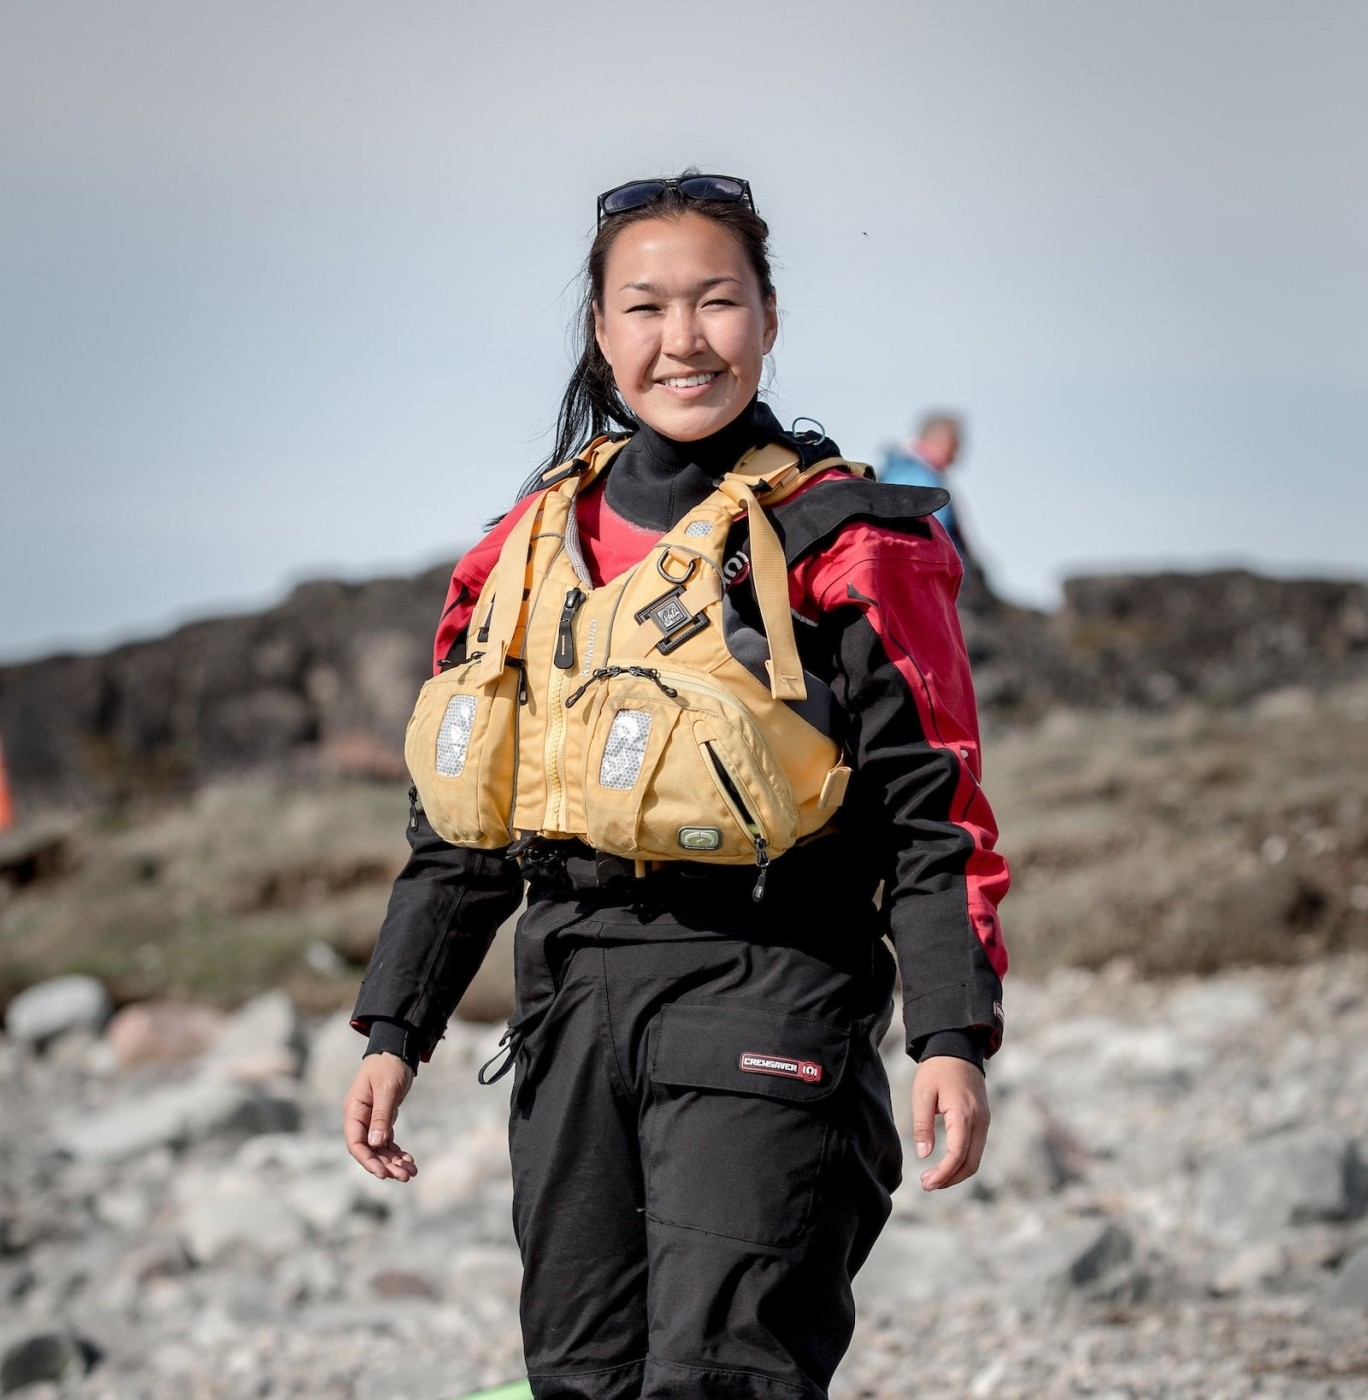 A Greenlandic kayaking guide from MS Fram near Saqqaq in Greenland. Photo by Mads Pihl - Visit Greenland